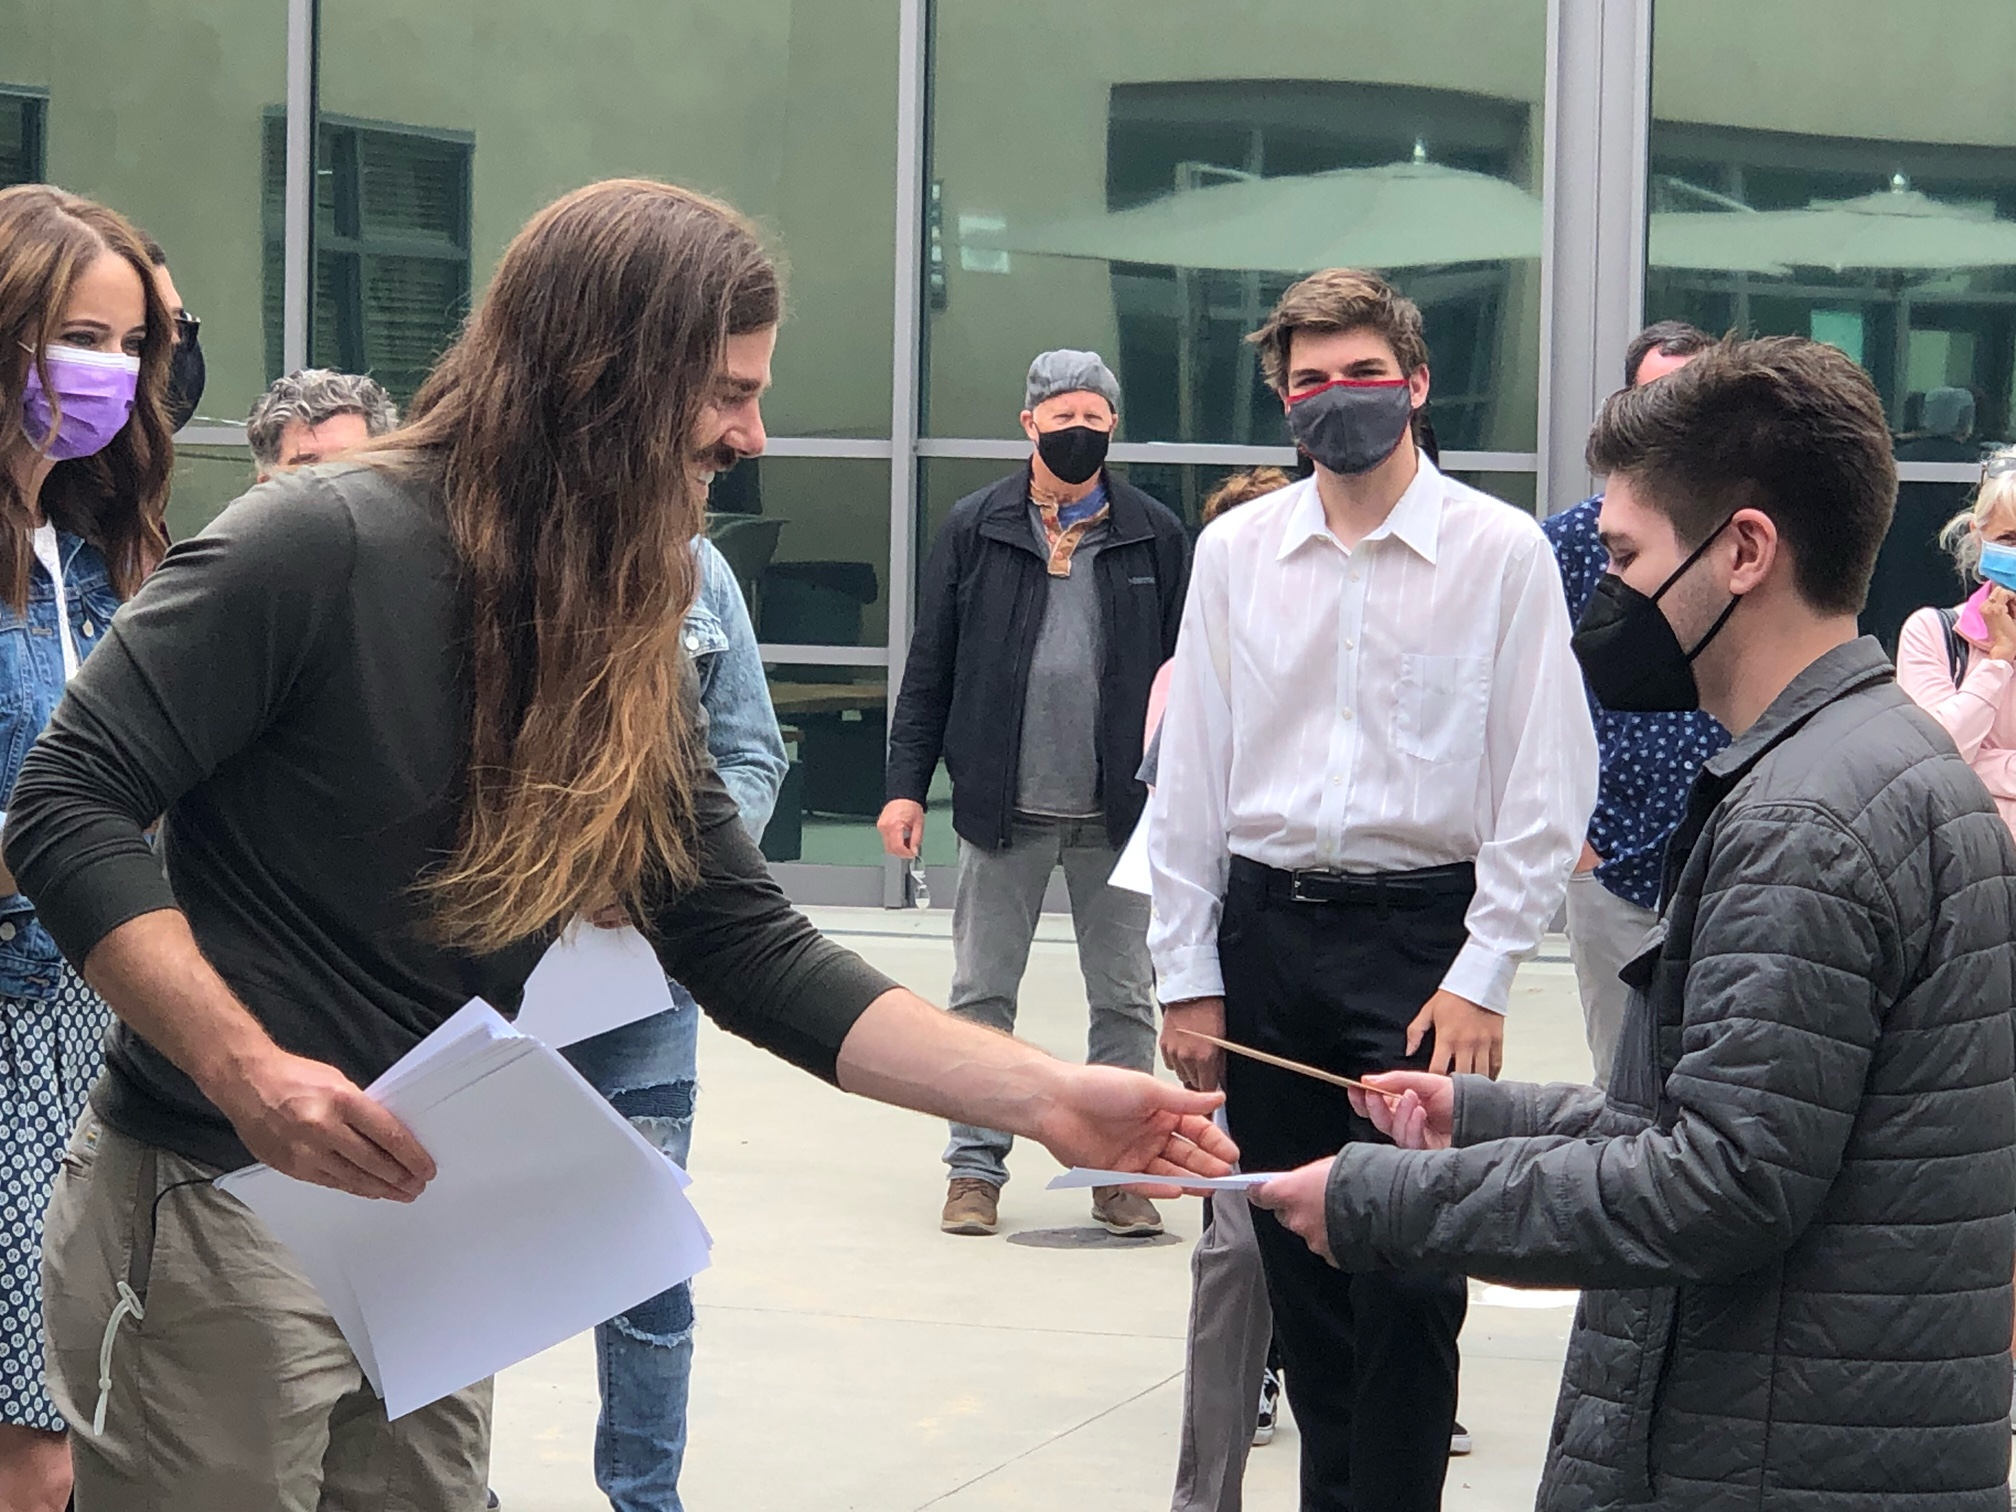 A six-year promise between Irvine students and a Seattle-based CEO turns into nearly $50,000 in college scholarships